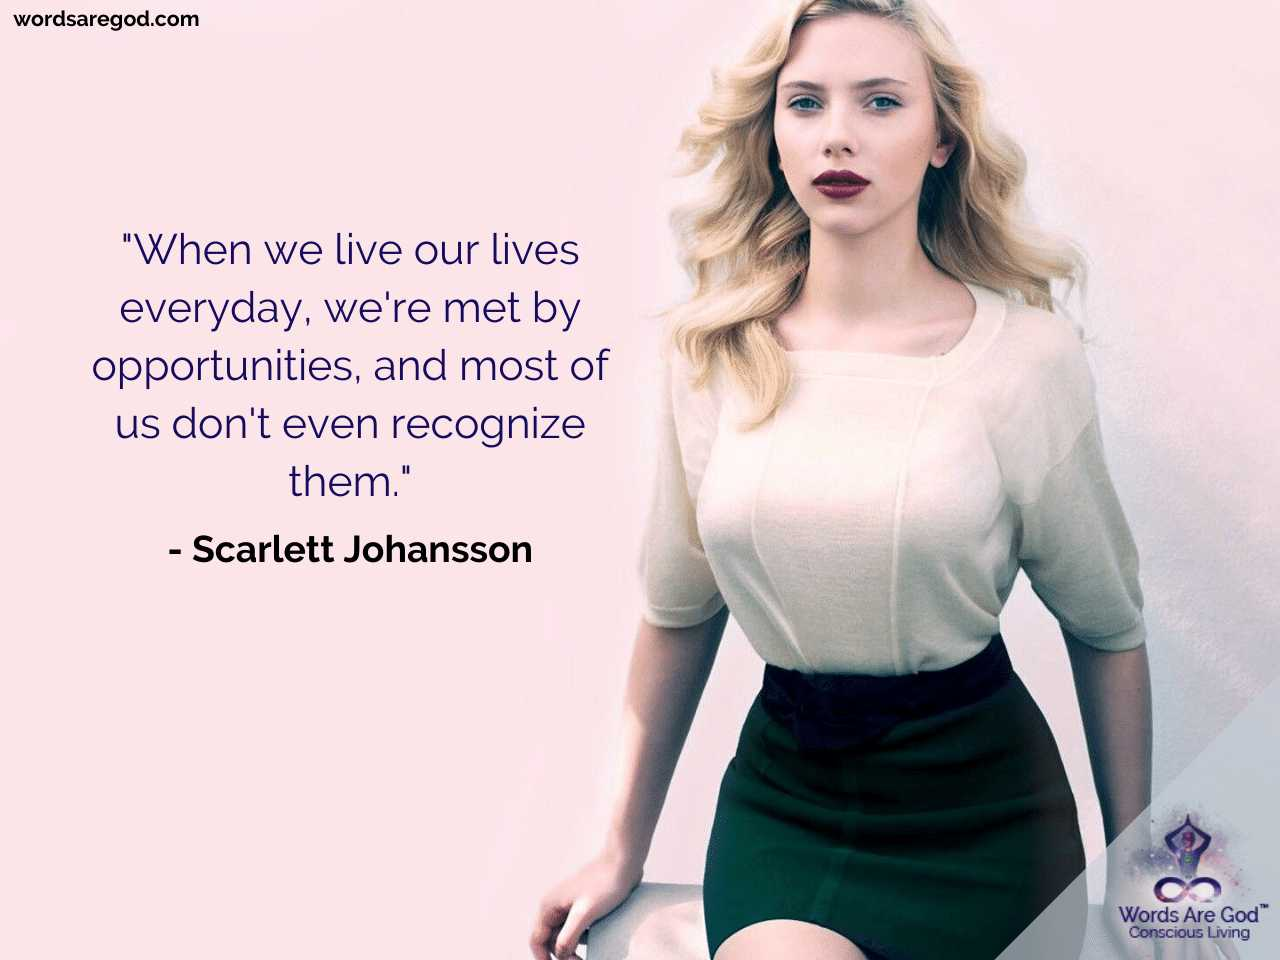 Scarlett Johansson Best Quote by Scarlett Johansson